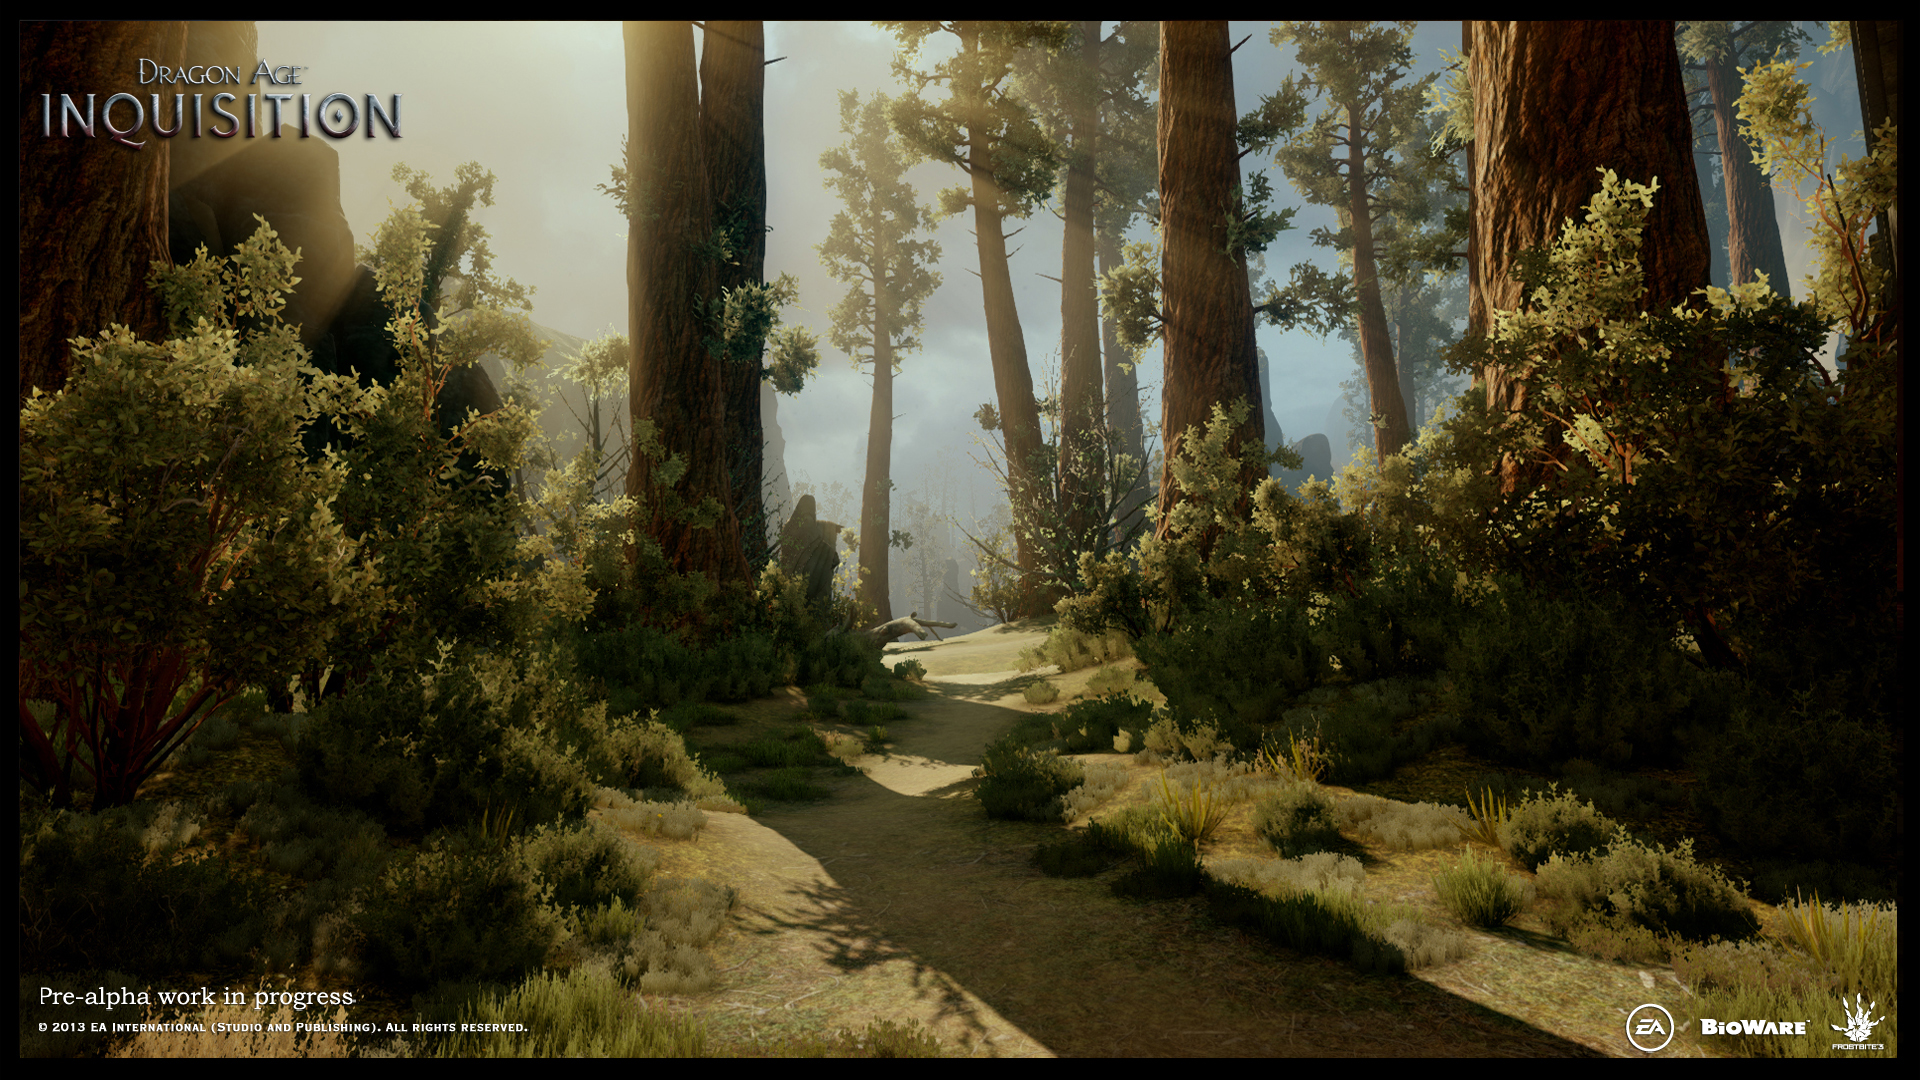 dragon-age-inquisition-ps4-7